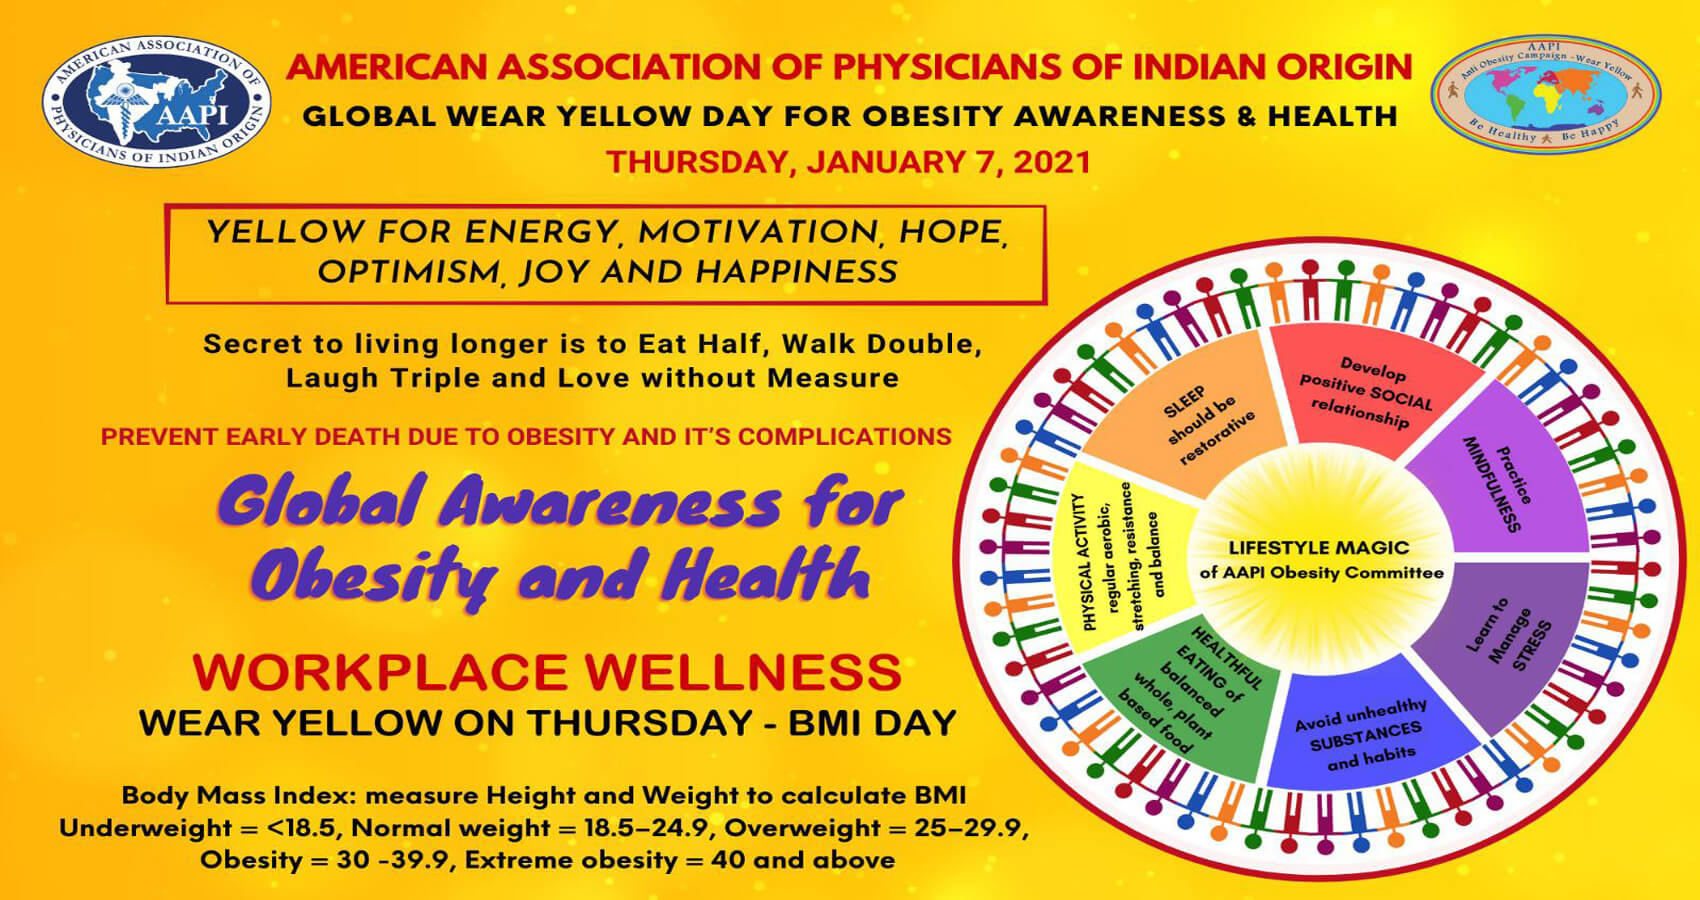 AAPI To Observe January 7th As Global Wear Yellow Day For Obesity Awareness & Health